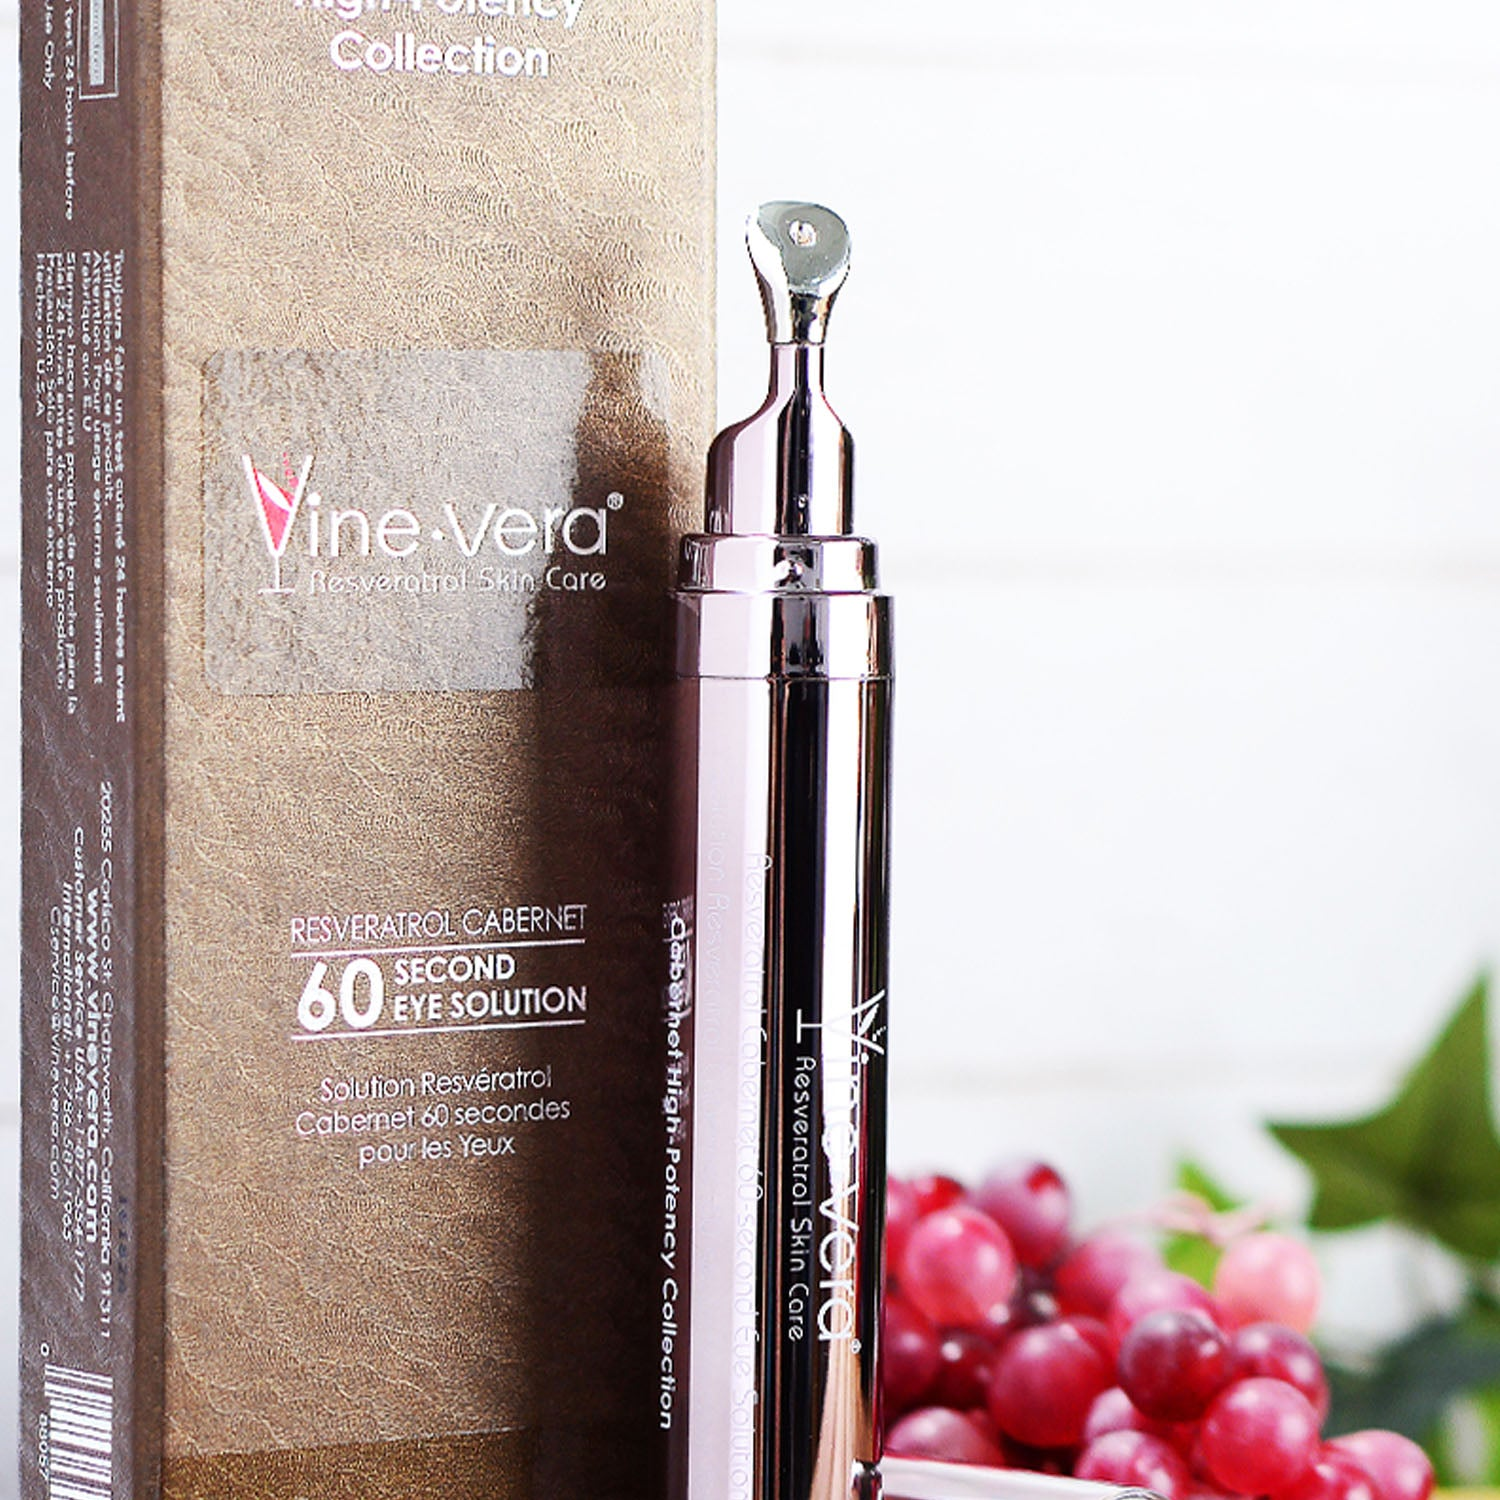 Vine Vera Resveratrol Cabernet Anti Wrinkle Eye Cream